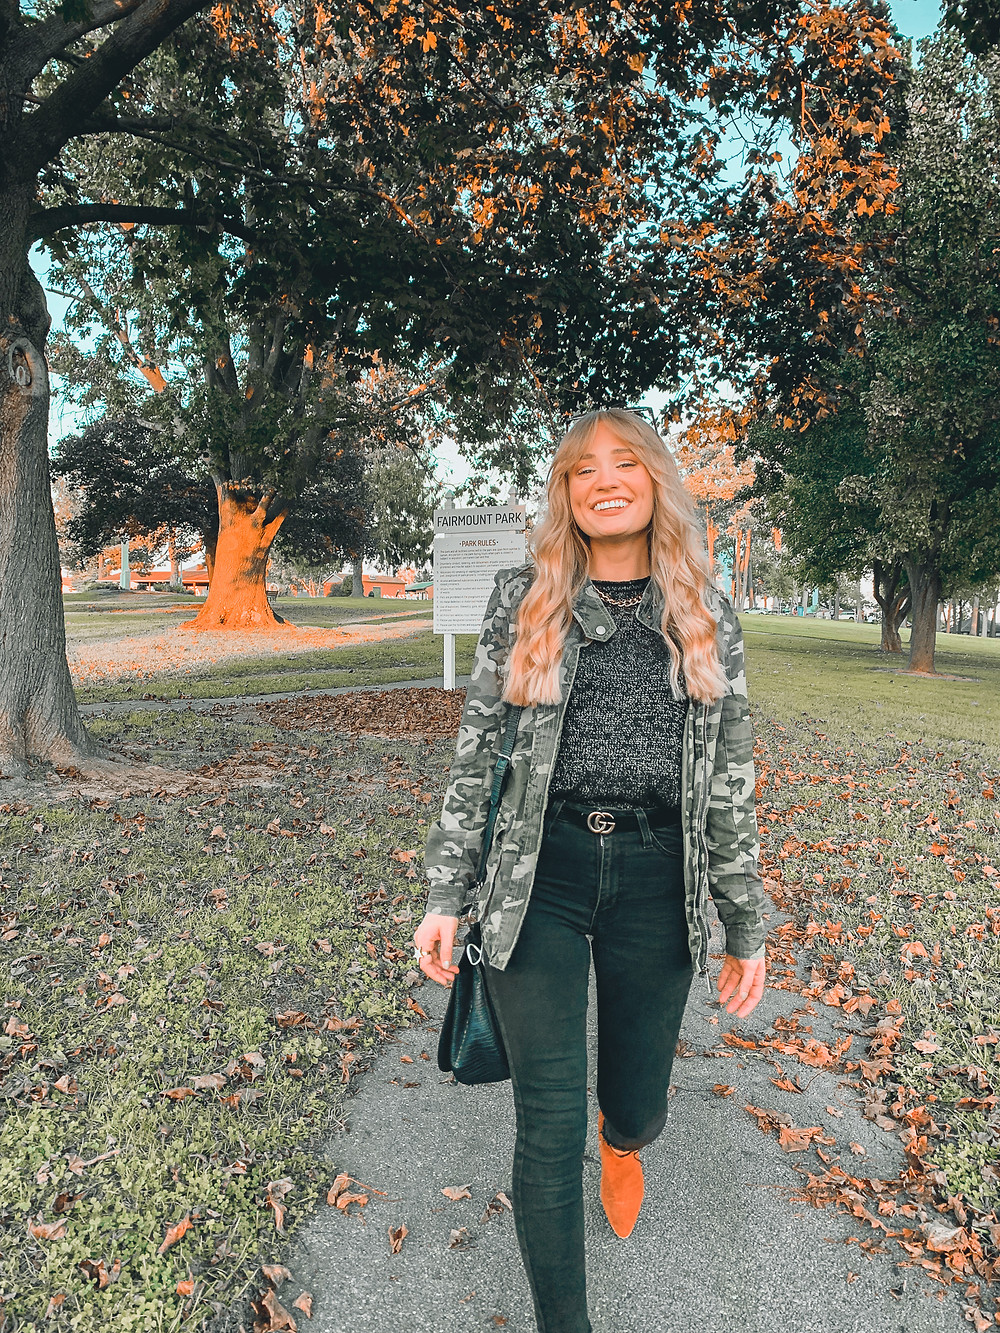 camouflage jacket, blonde hair, boots, black jeans, trees, park